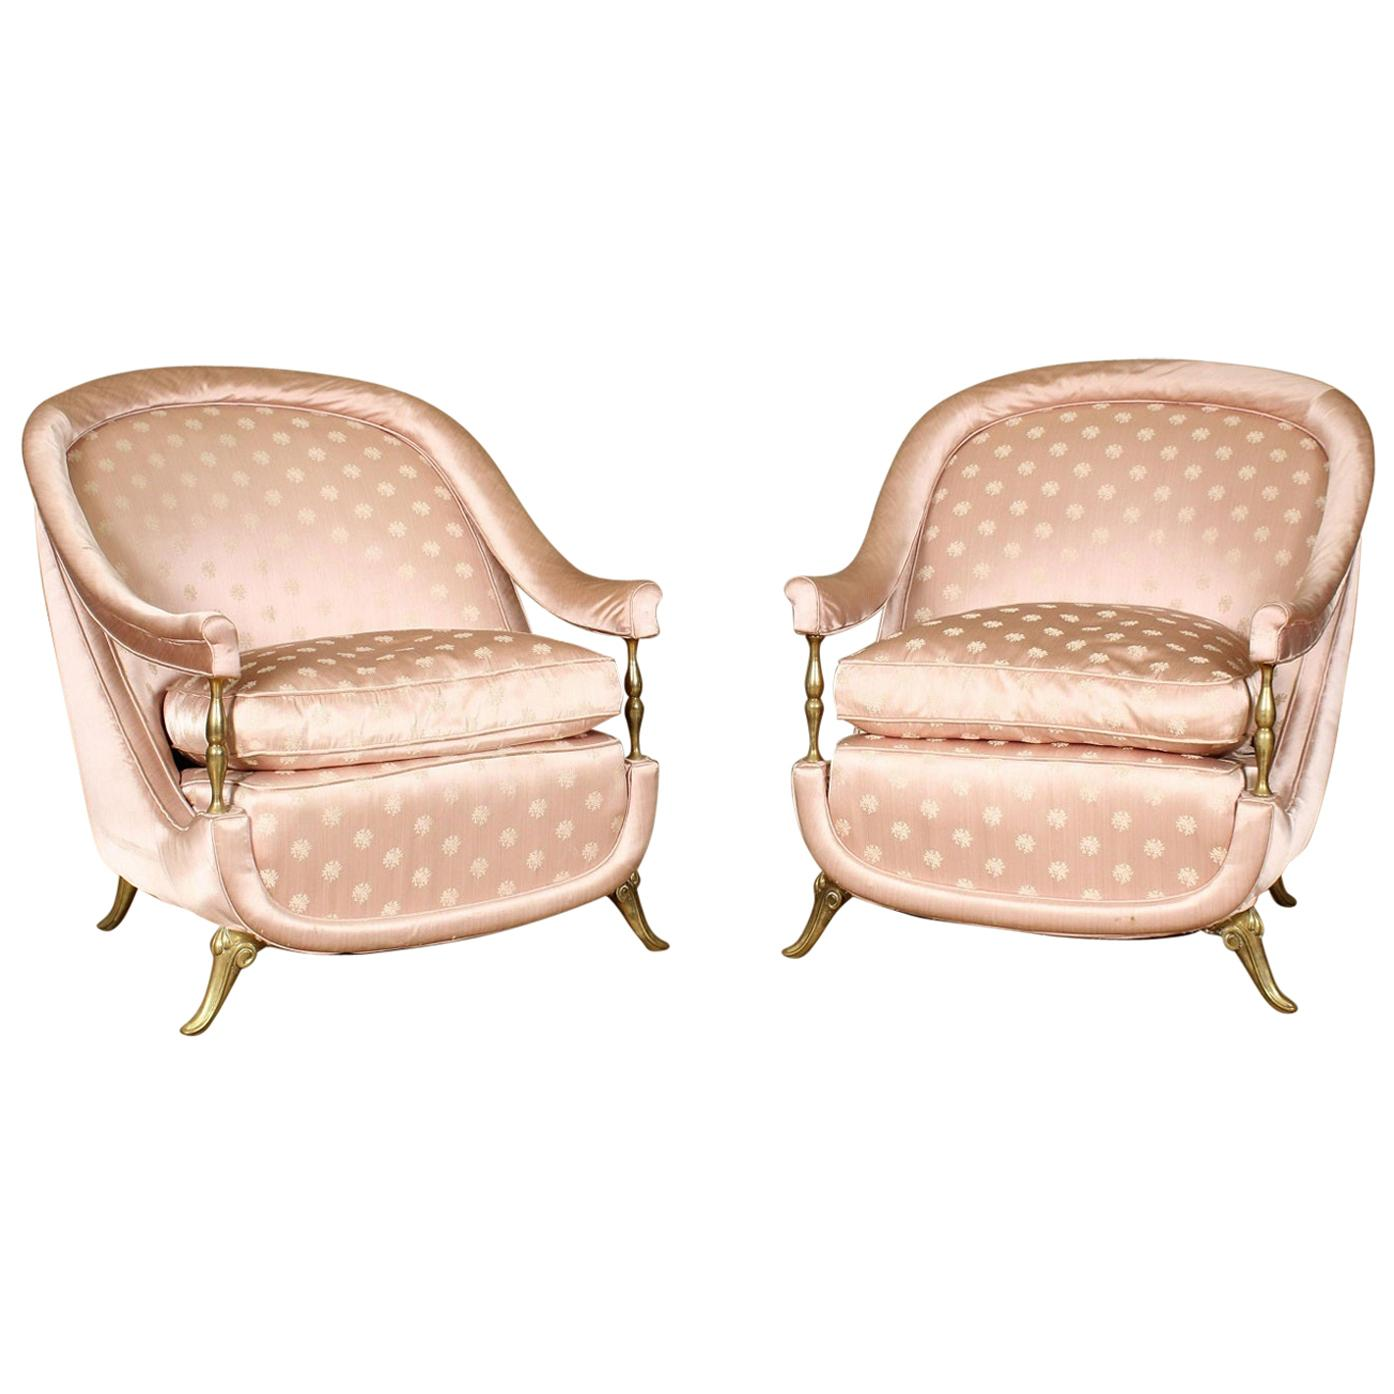 Pair of 1950s French Bronze and Upholstered Lounge Chairs